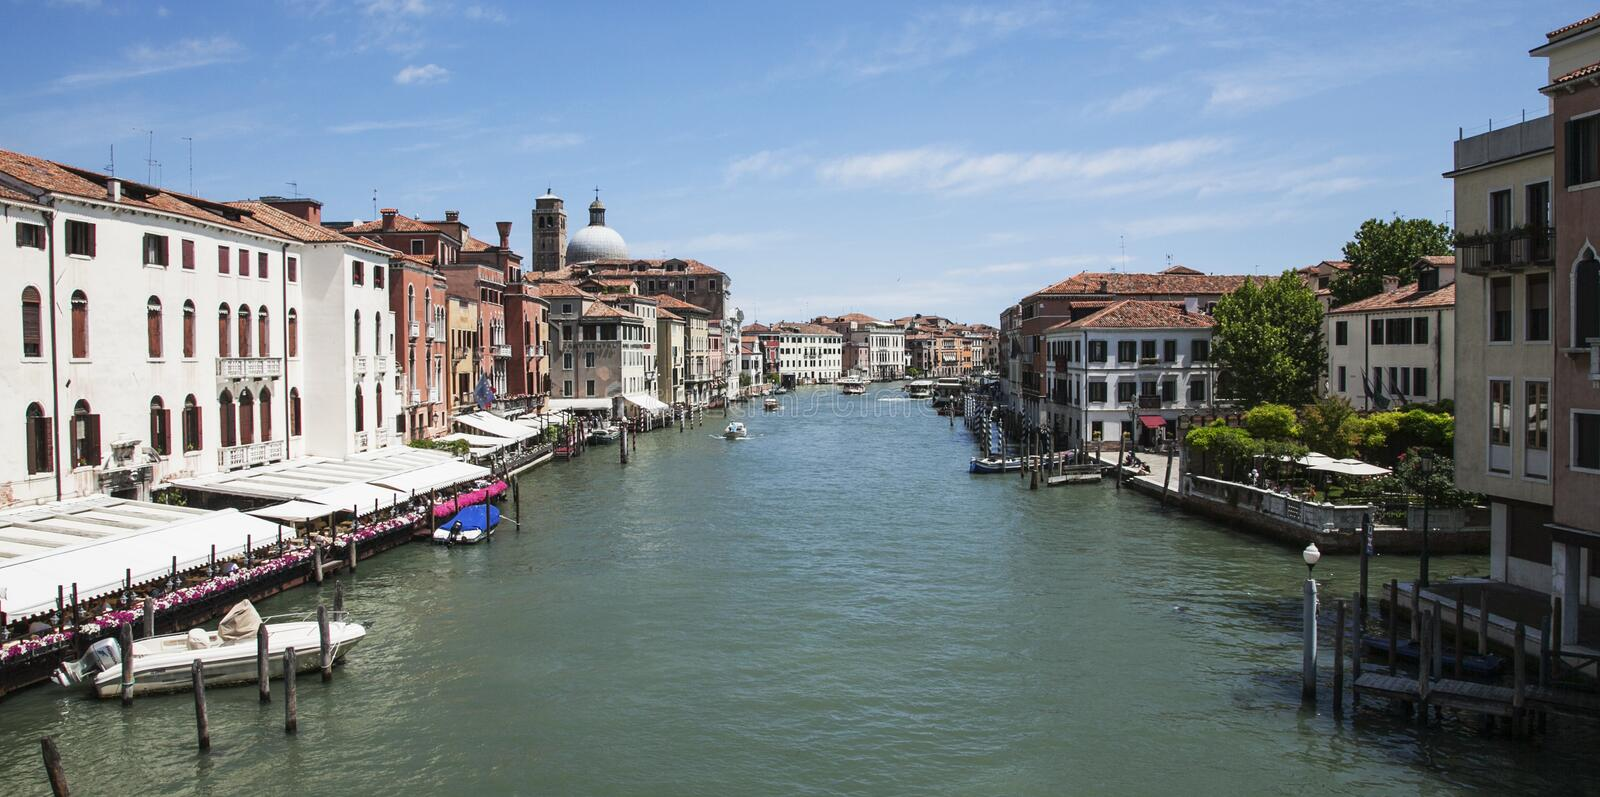 Canal, Venice, Italy. royalty free stock photos